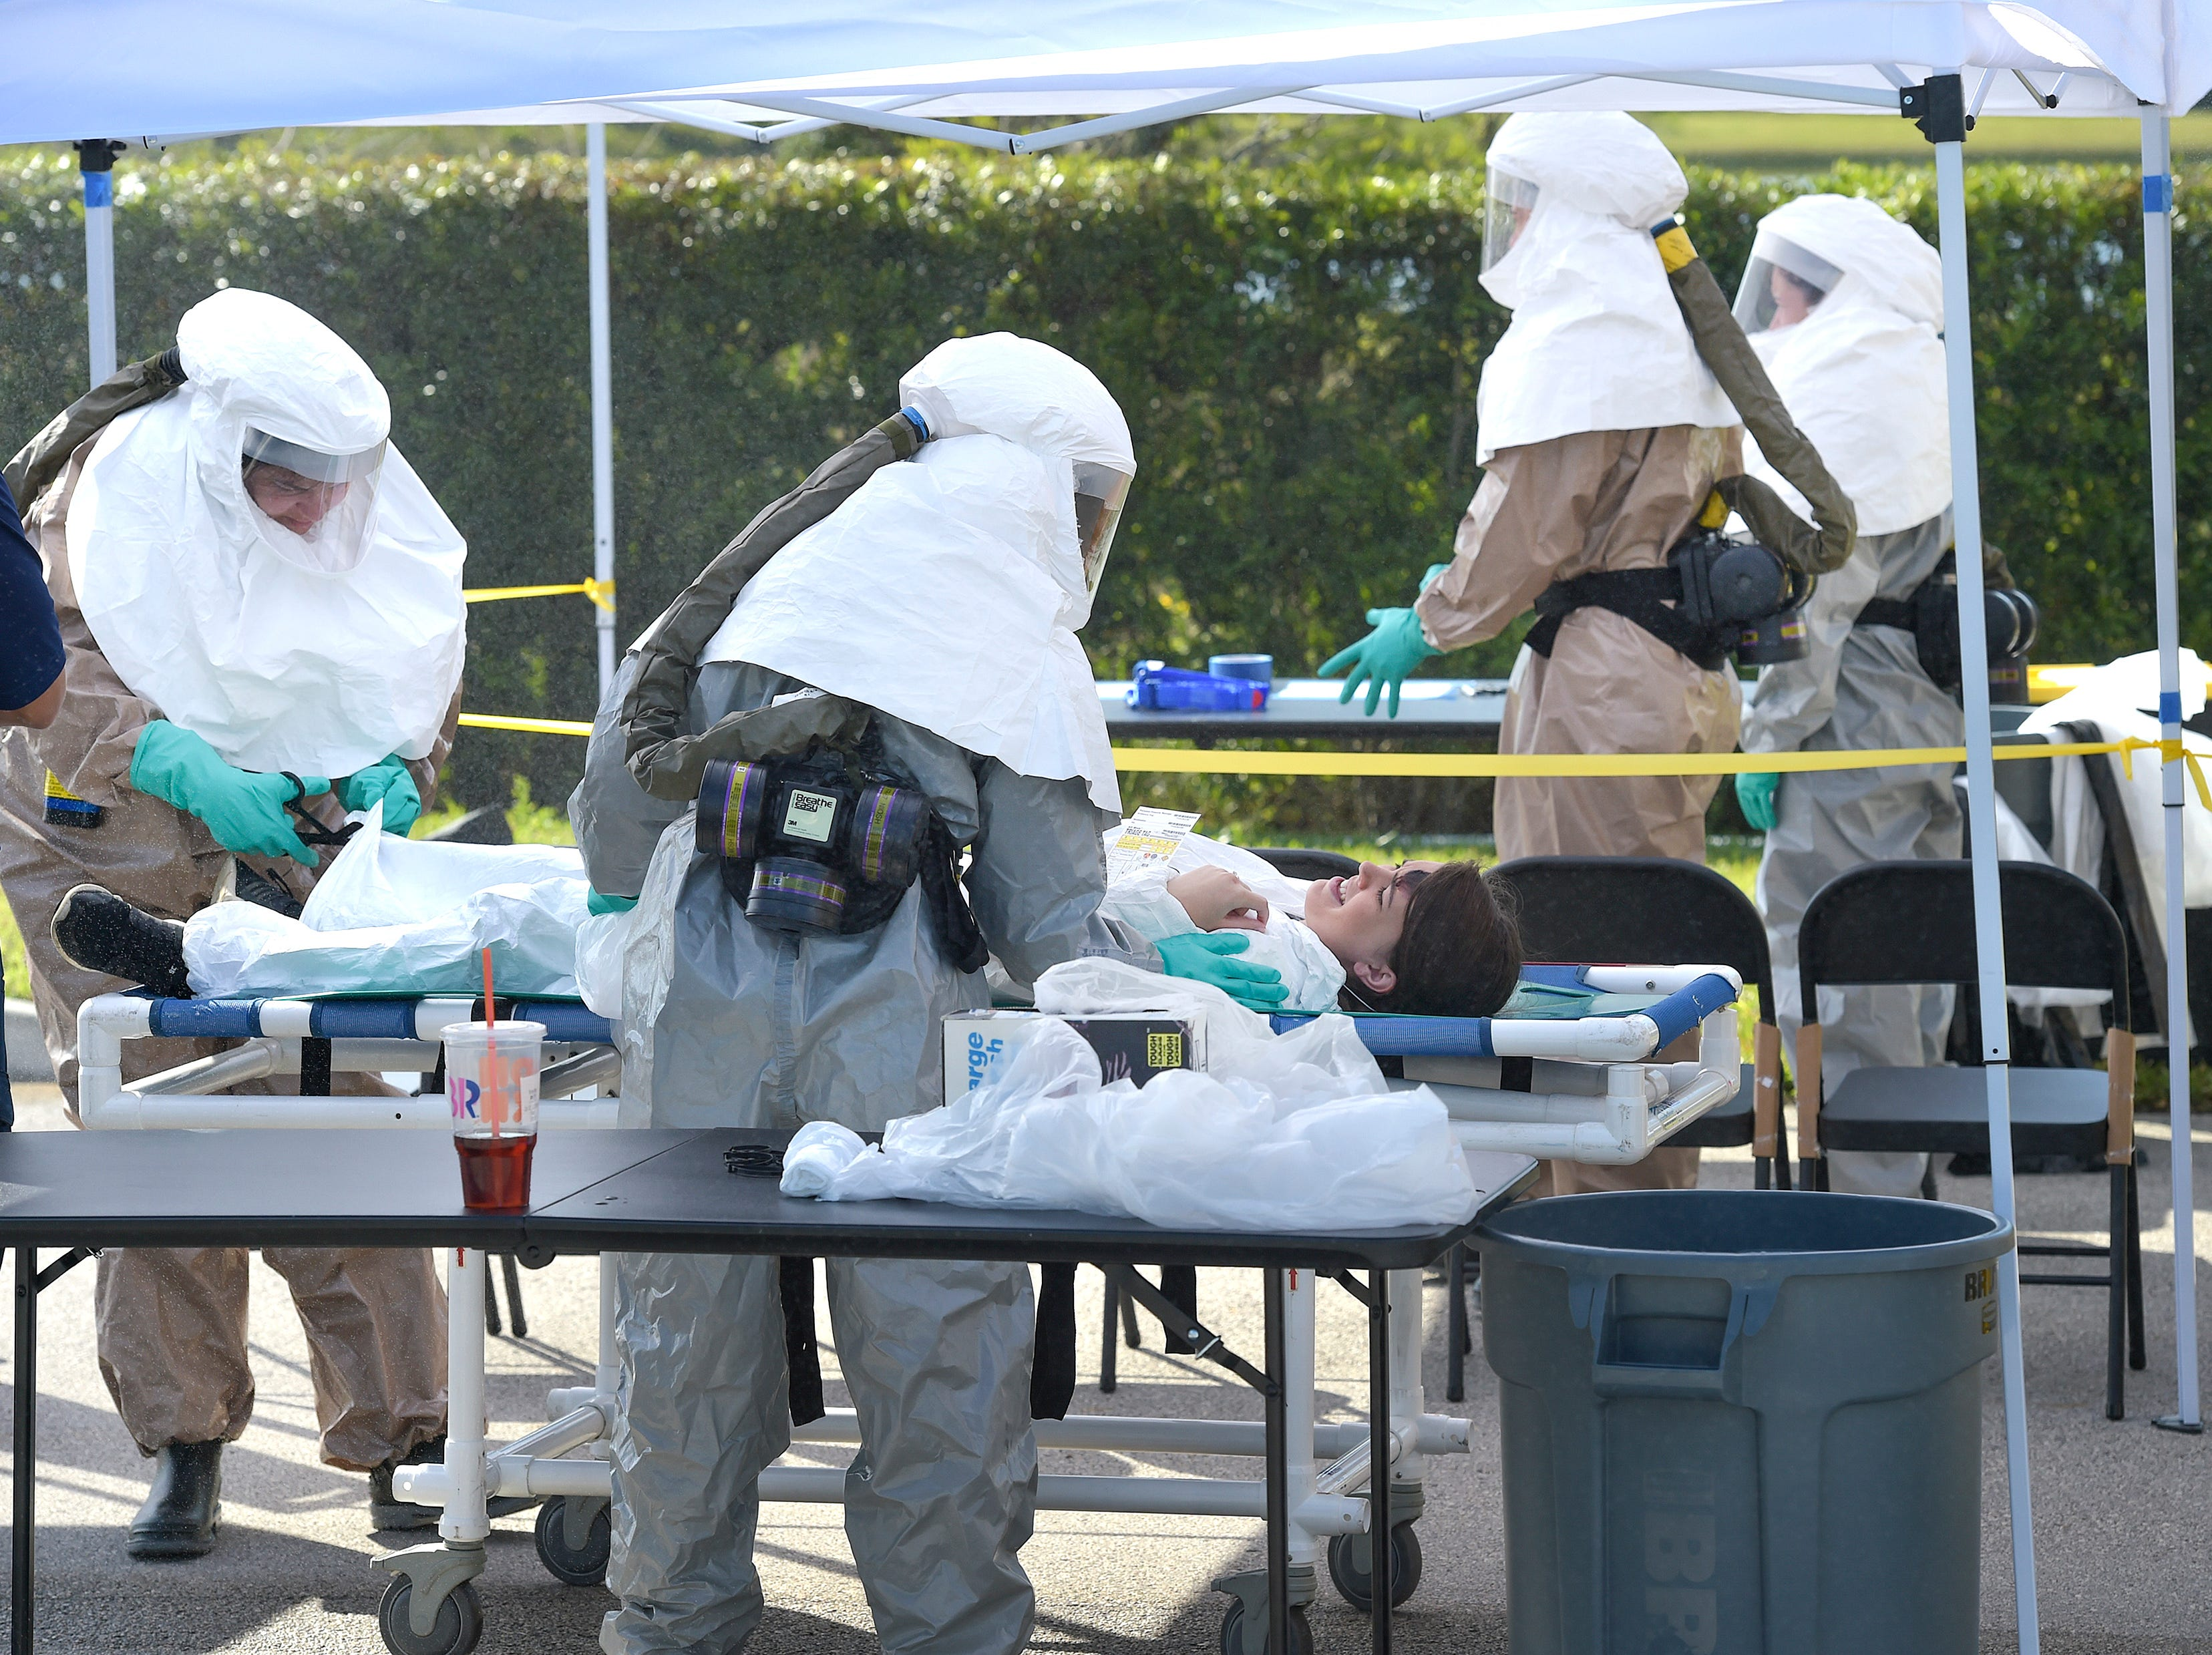 Hospital Emergency Response Team (HERT) members from the Cleveland Clinic Tradition hospital staff receive victims involved in a mock terrorist incident, preparing them to go through a decontamination process, before admission into the hospital ER during a disaster preparedness exercise on Thursday, April 11, 2019, in the Tradition development of Port St. Lucie. All the Cleveland Martin Heath Hospitals, along with the Central Florida Disaster Medical Coalition are participating in the disaster preparedness exercises.